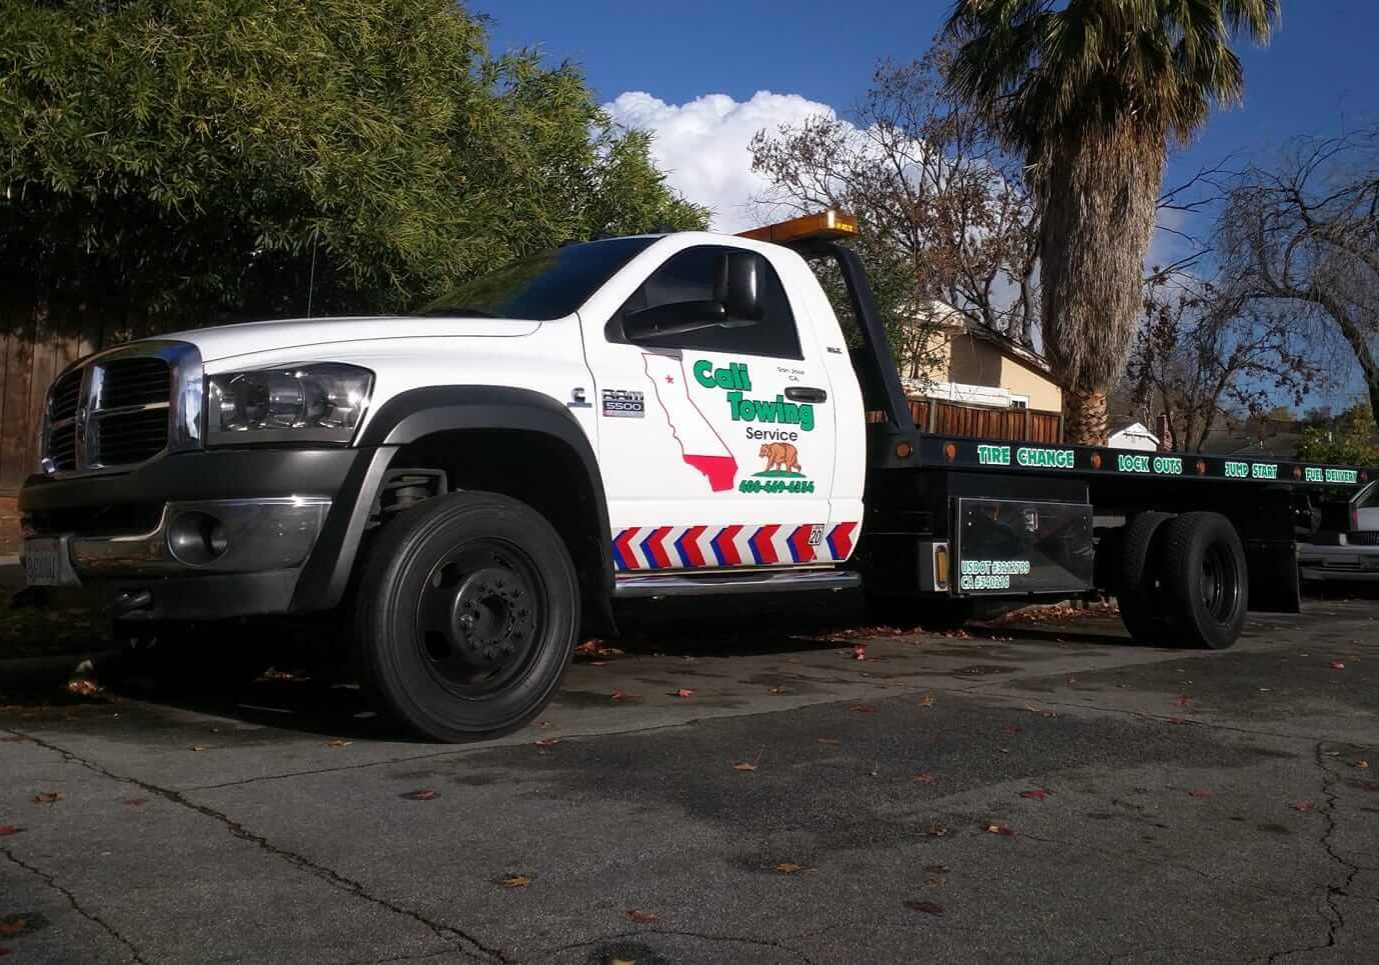 Cali Towing Service - Towing and Roadside Services in San Jose, CA